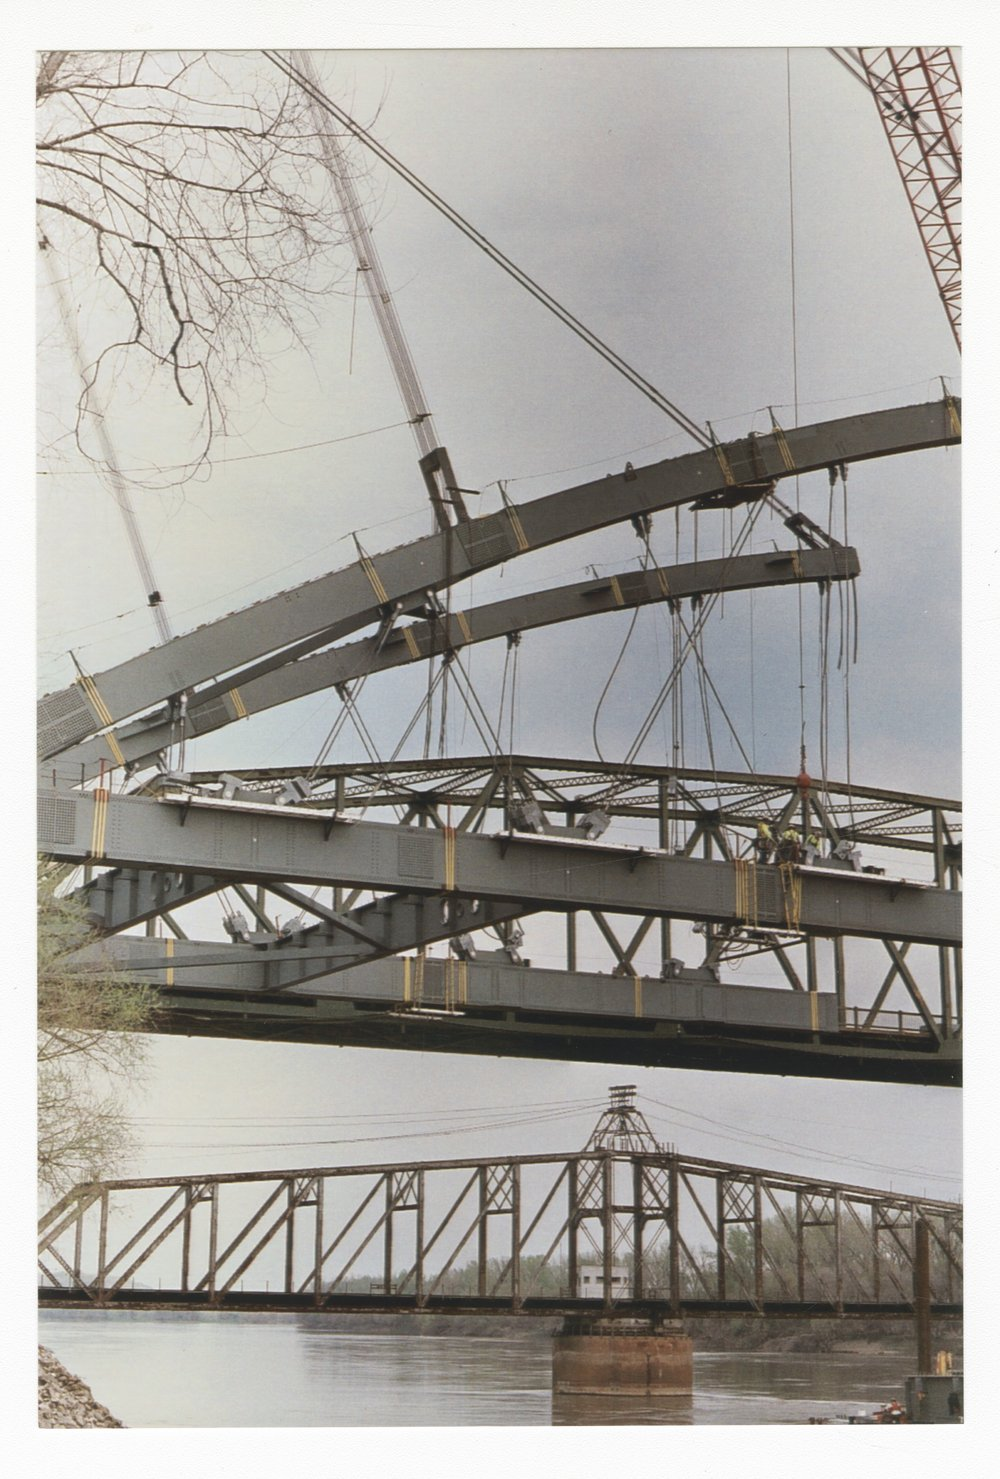 Construction on the Amelia Earhart Memorial bridge at Atchison, Kansas - 8